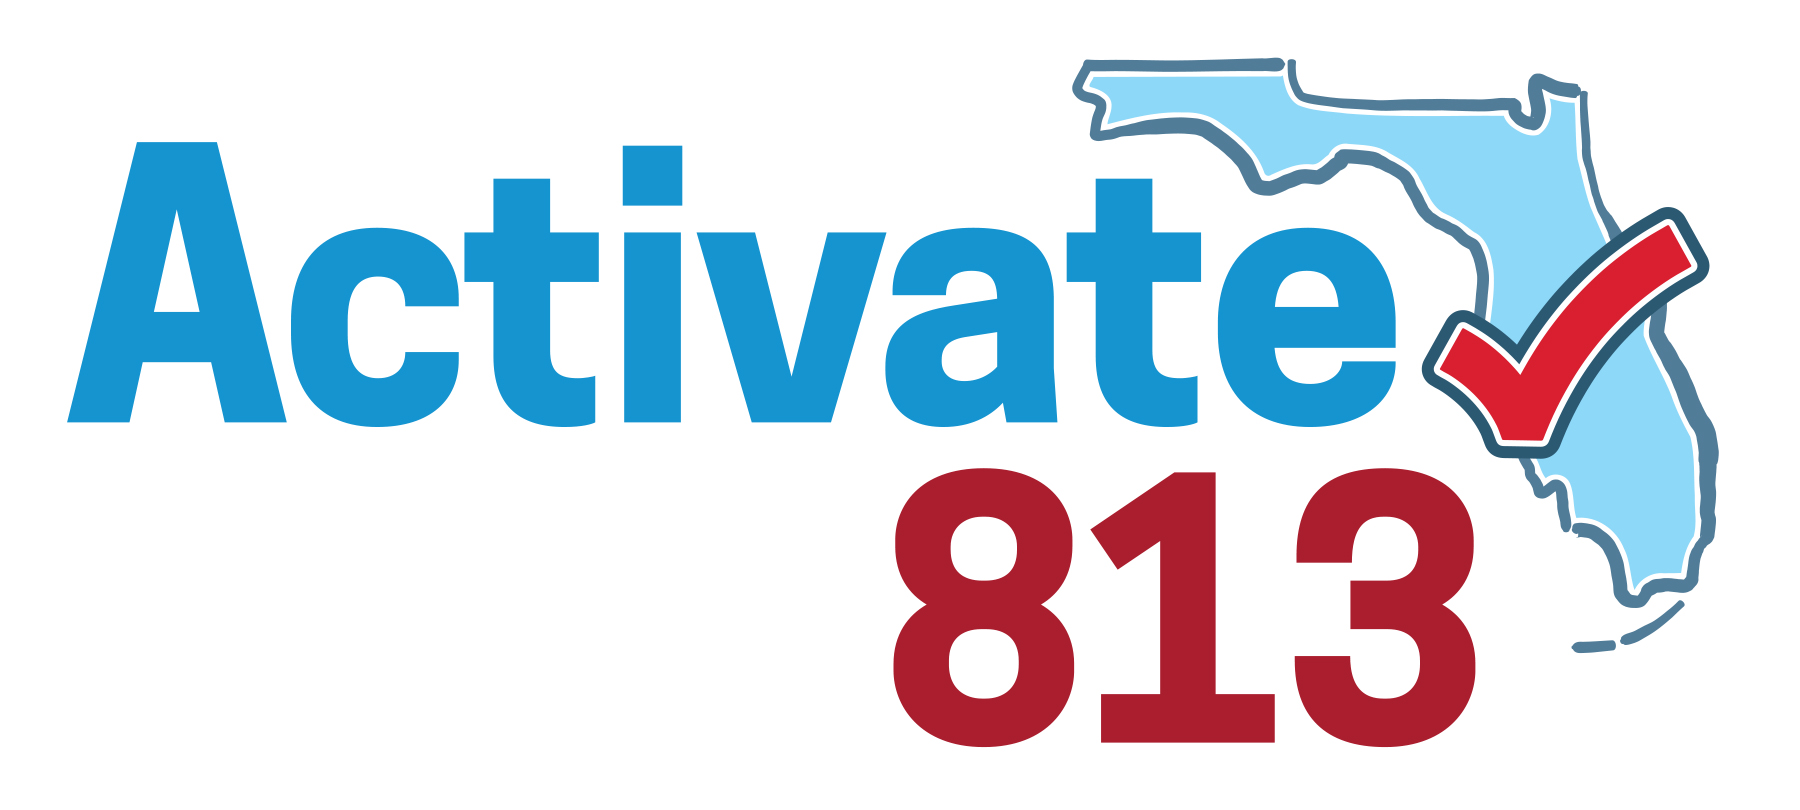 Activate813 Logo - Collaborative Initiative created by The Junior League of Tampa